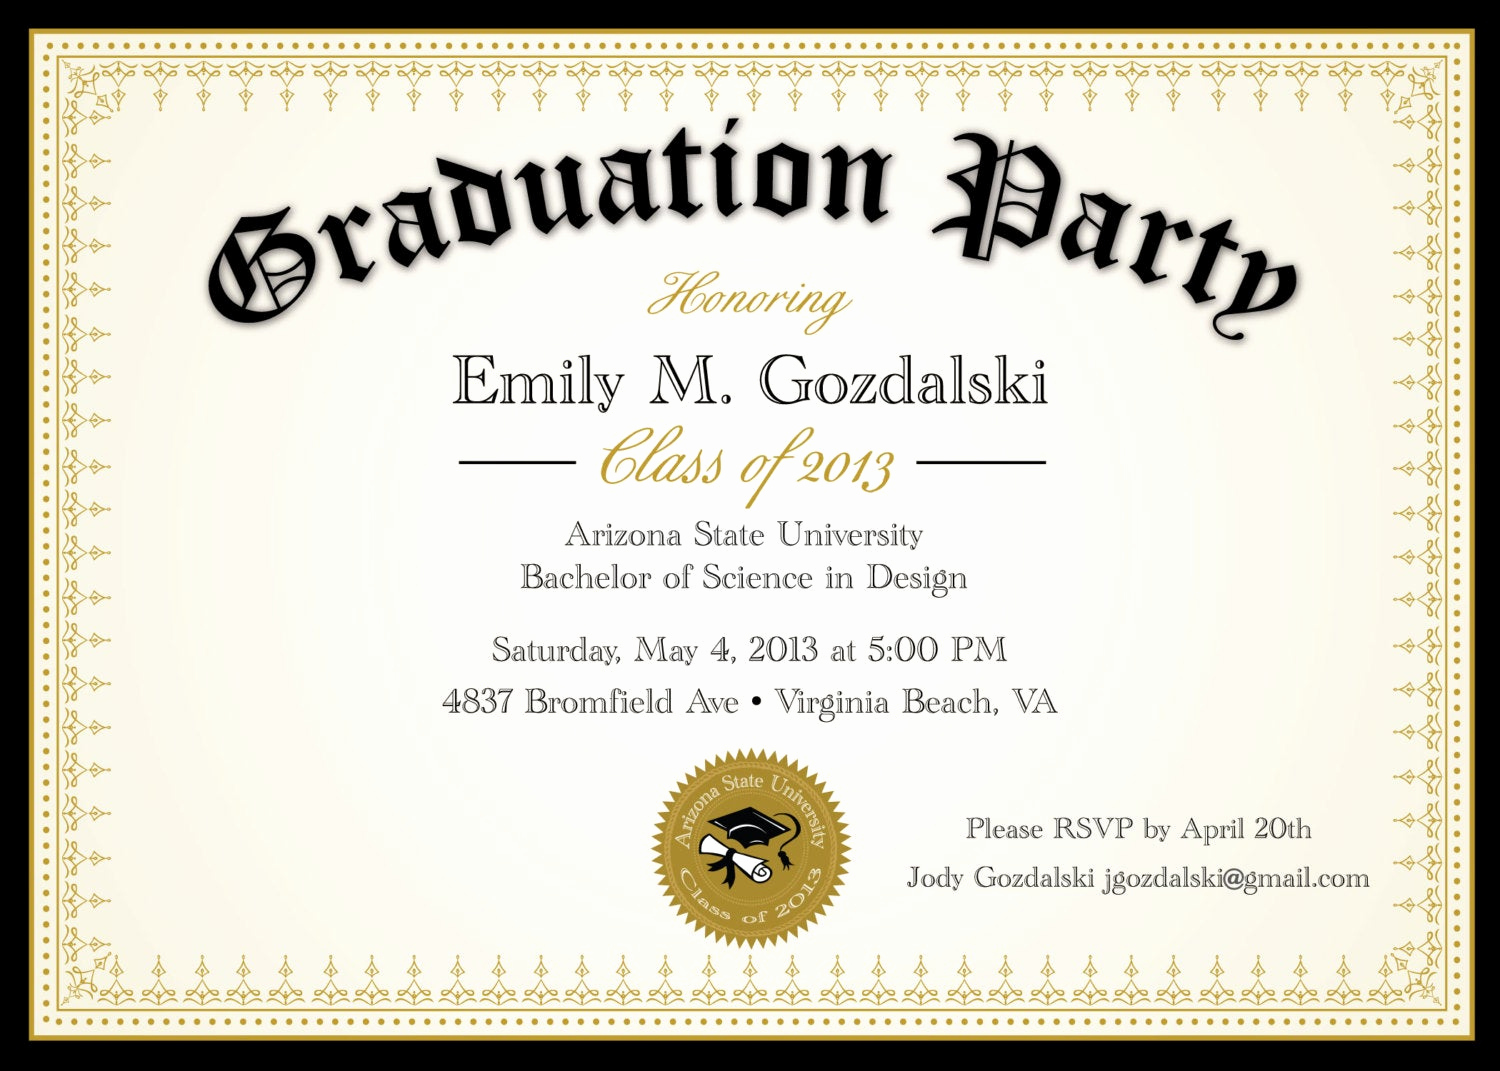 Graduation Reception Invitation Template Beautiful Diploma Graduation Party Invitations Grad by Announceitfavors